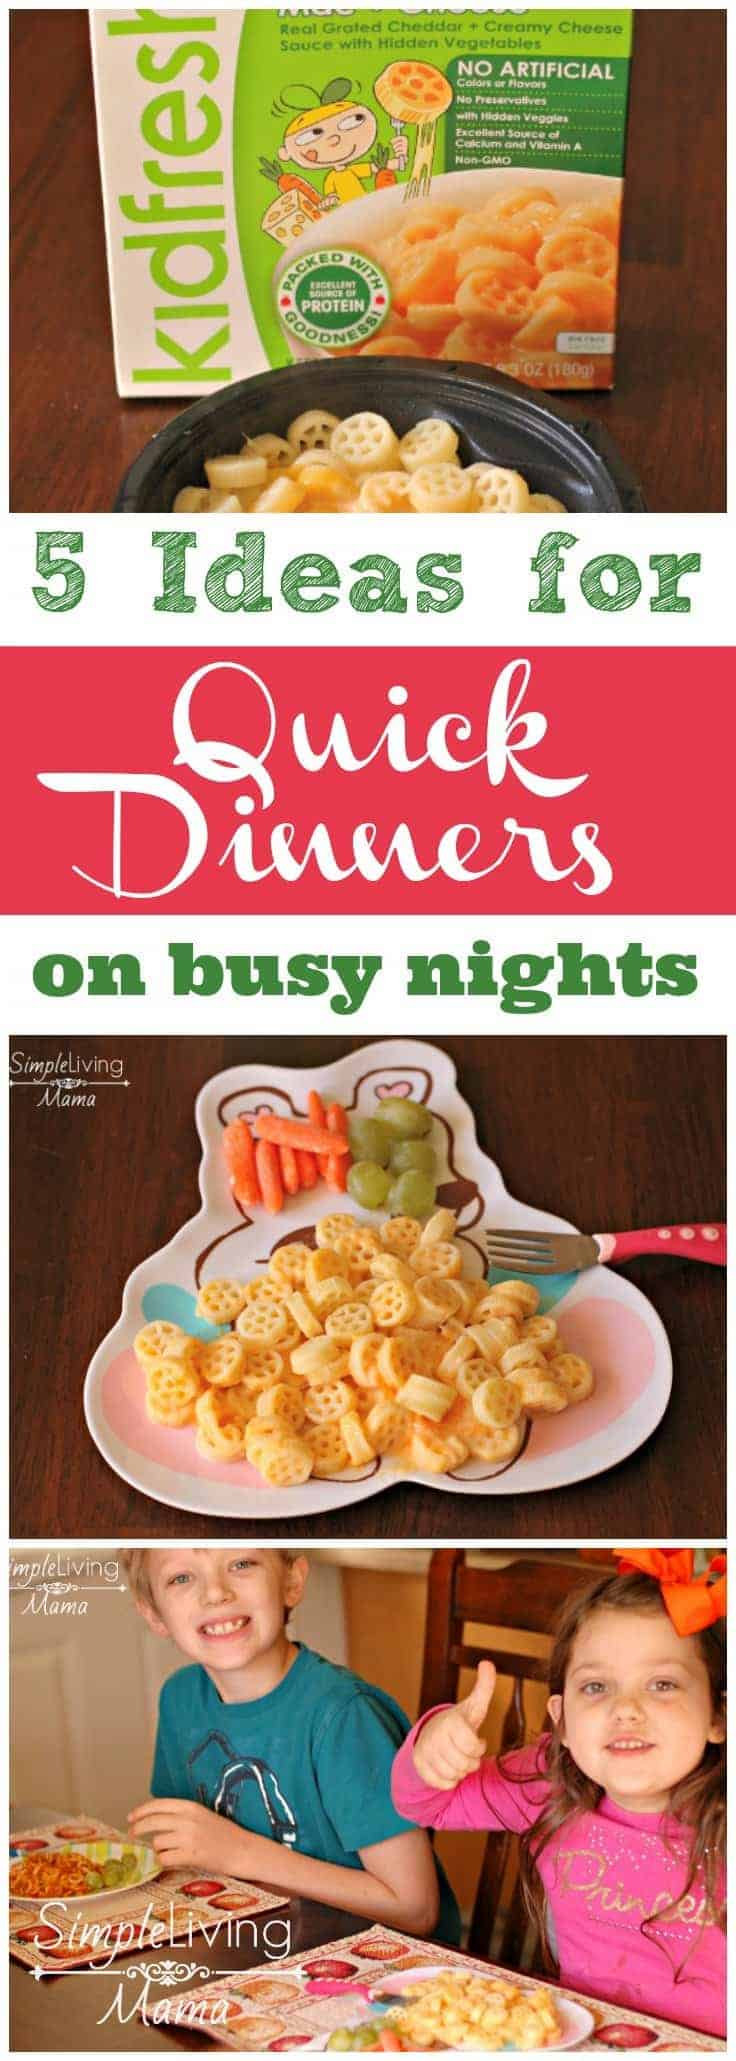 5 Ideas for Quick Dinners on Busy Nights - You know those inevitable nights that are rushed because the kids have somewhere to be? These ideas will give you healthy options to keep their tummies full!